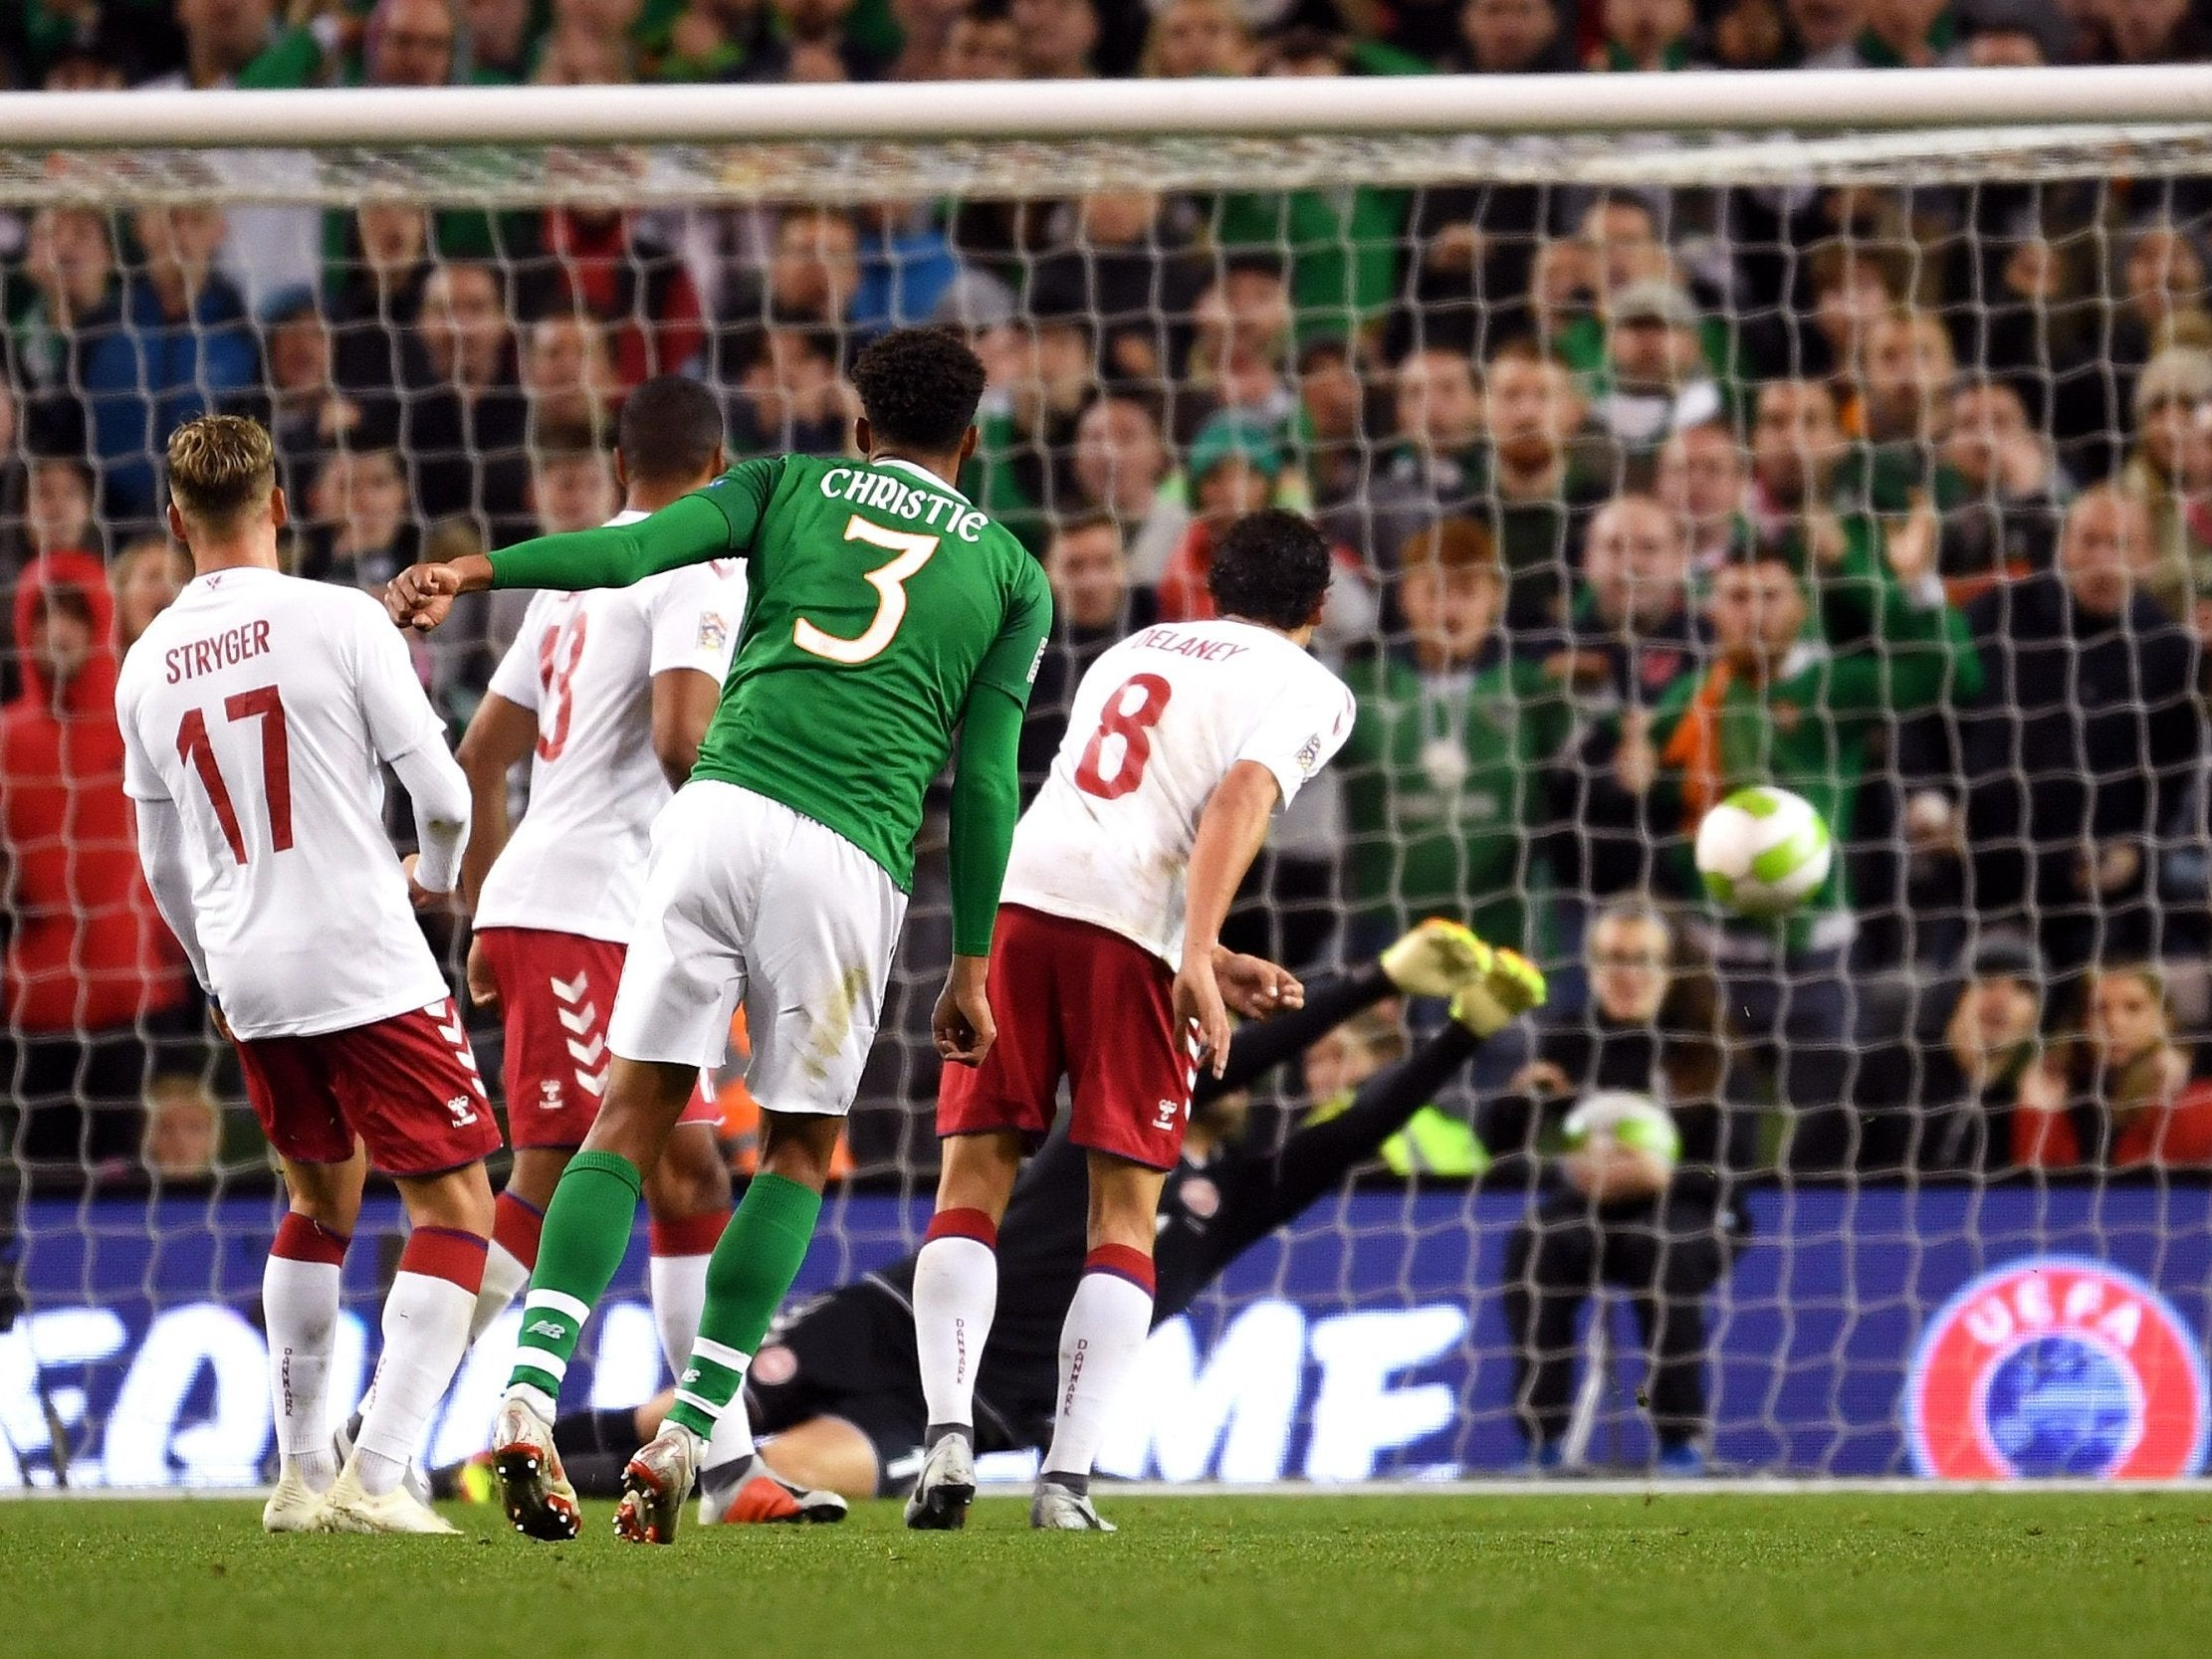 Republic of Ireland held by Denmark in dull Dublin encounter